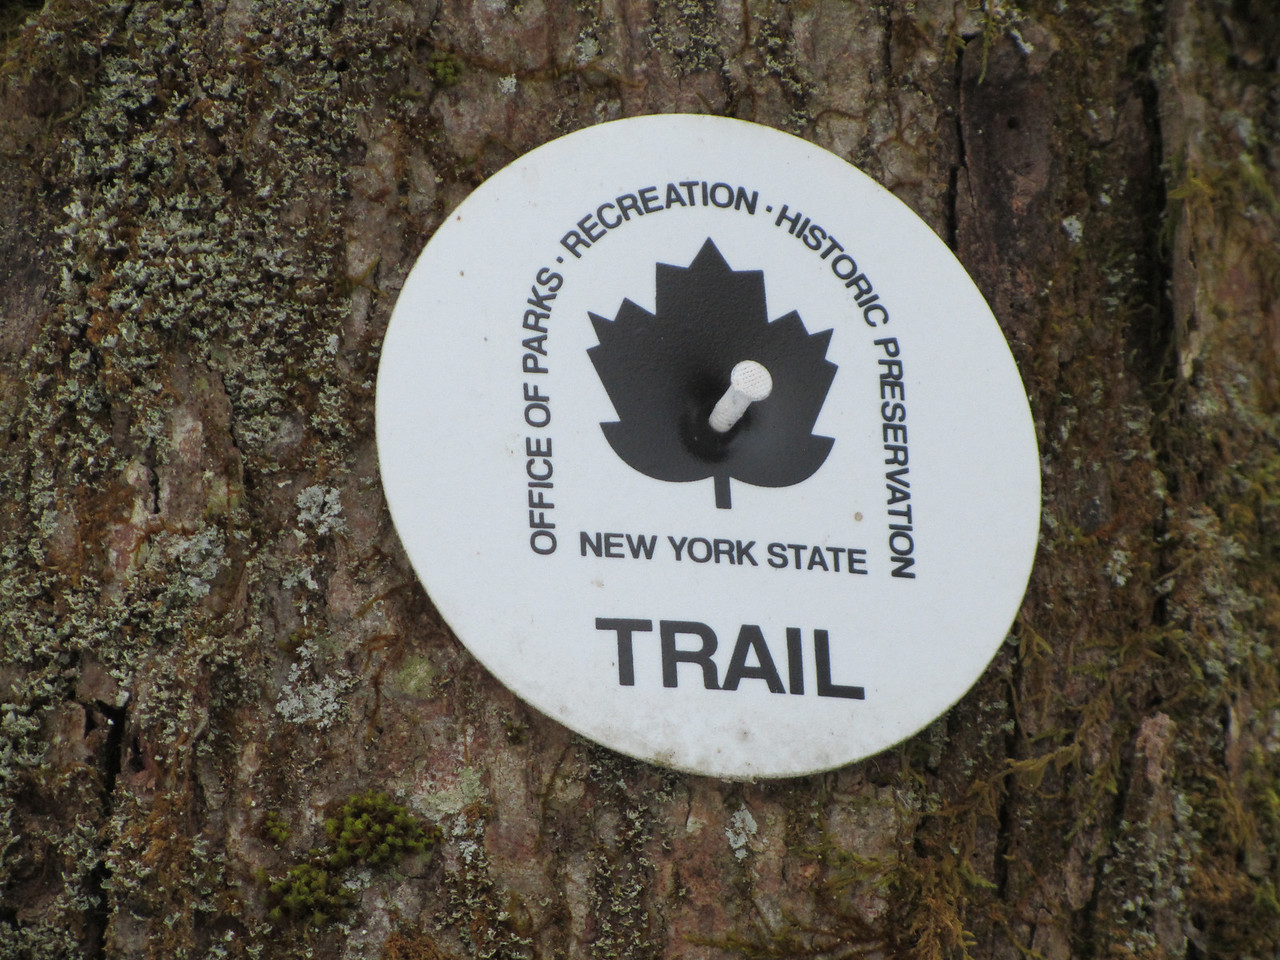 Check out these new trail markers. Very nice.